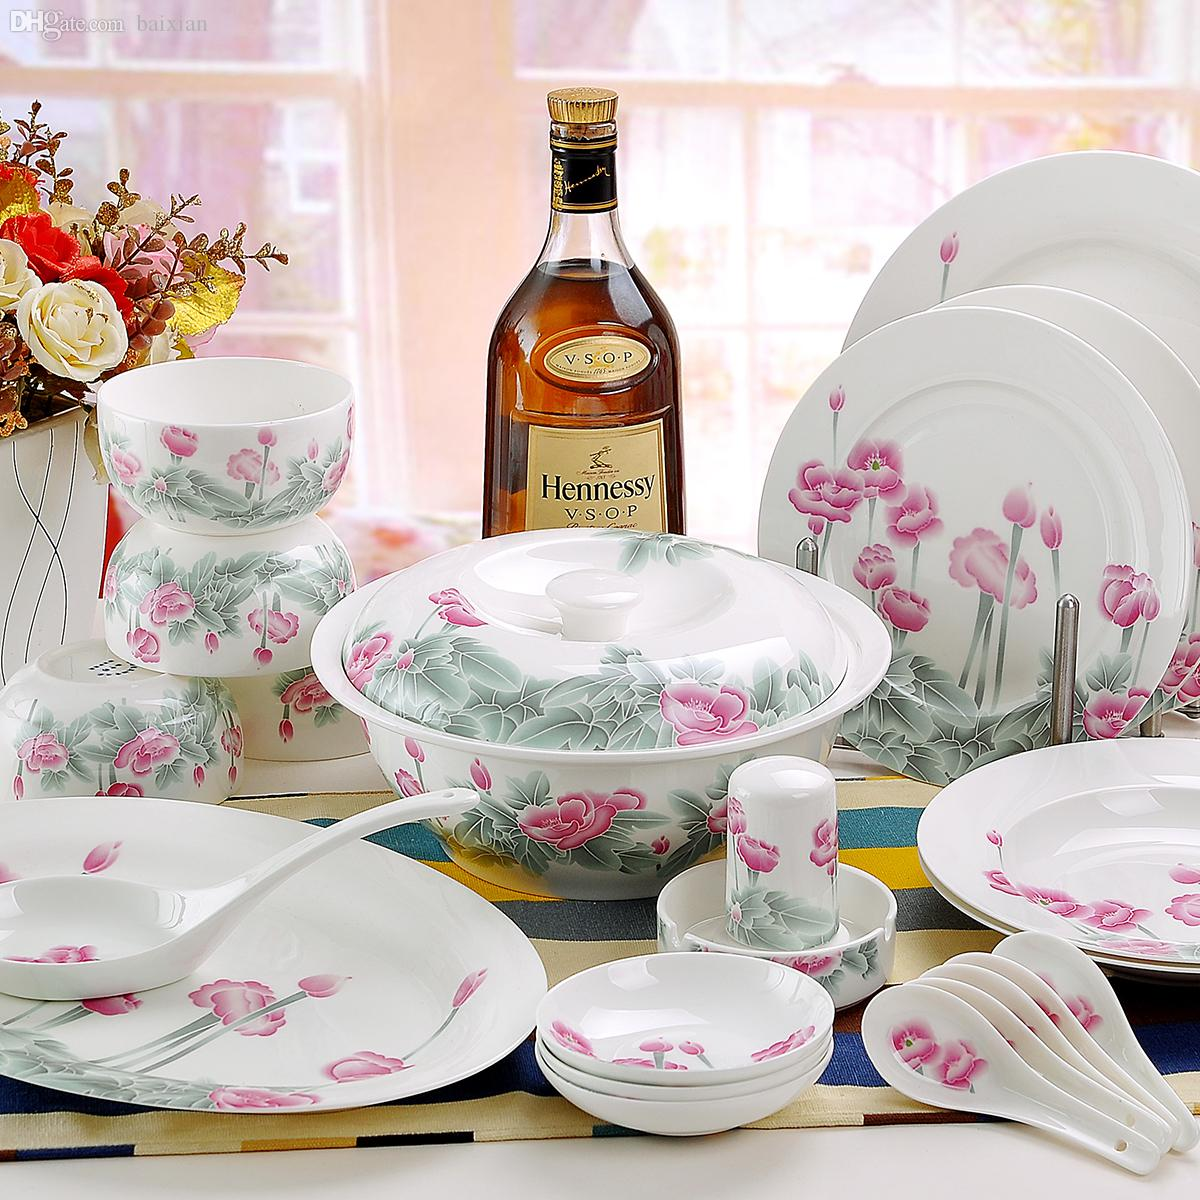 Wholesale Quality Chinese Dinnerware Multicolored Butterfly Flower Tableware Dinnerware Sets Sale Clearance Dinnerware Sets Stoneware From Baixian ... & Wholesale Quality Chinese Dinnerware Multicolored Butterfly Flower ...